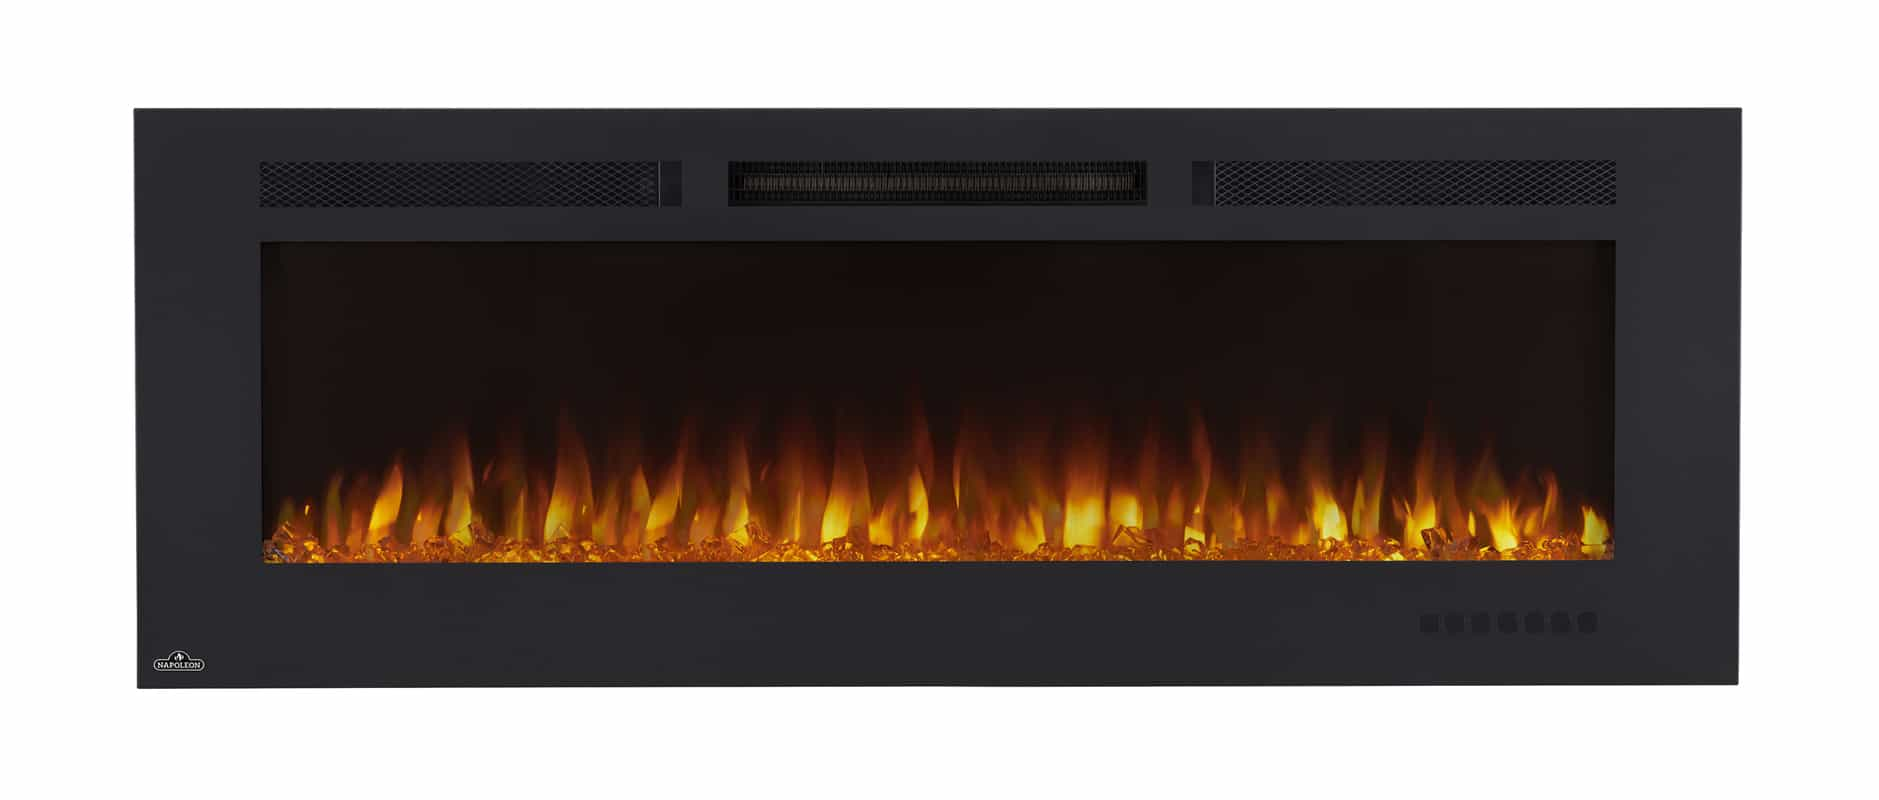 products classic with electric in infrared x diva stand fireplace silver platinum flame product image tv